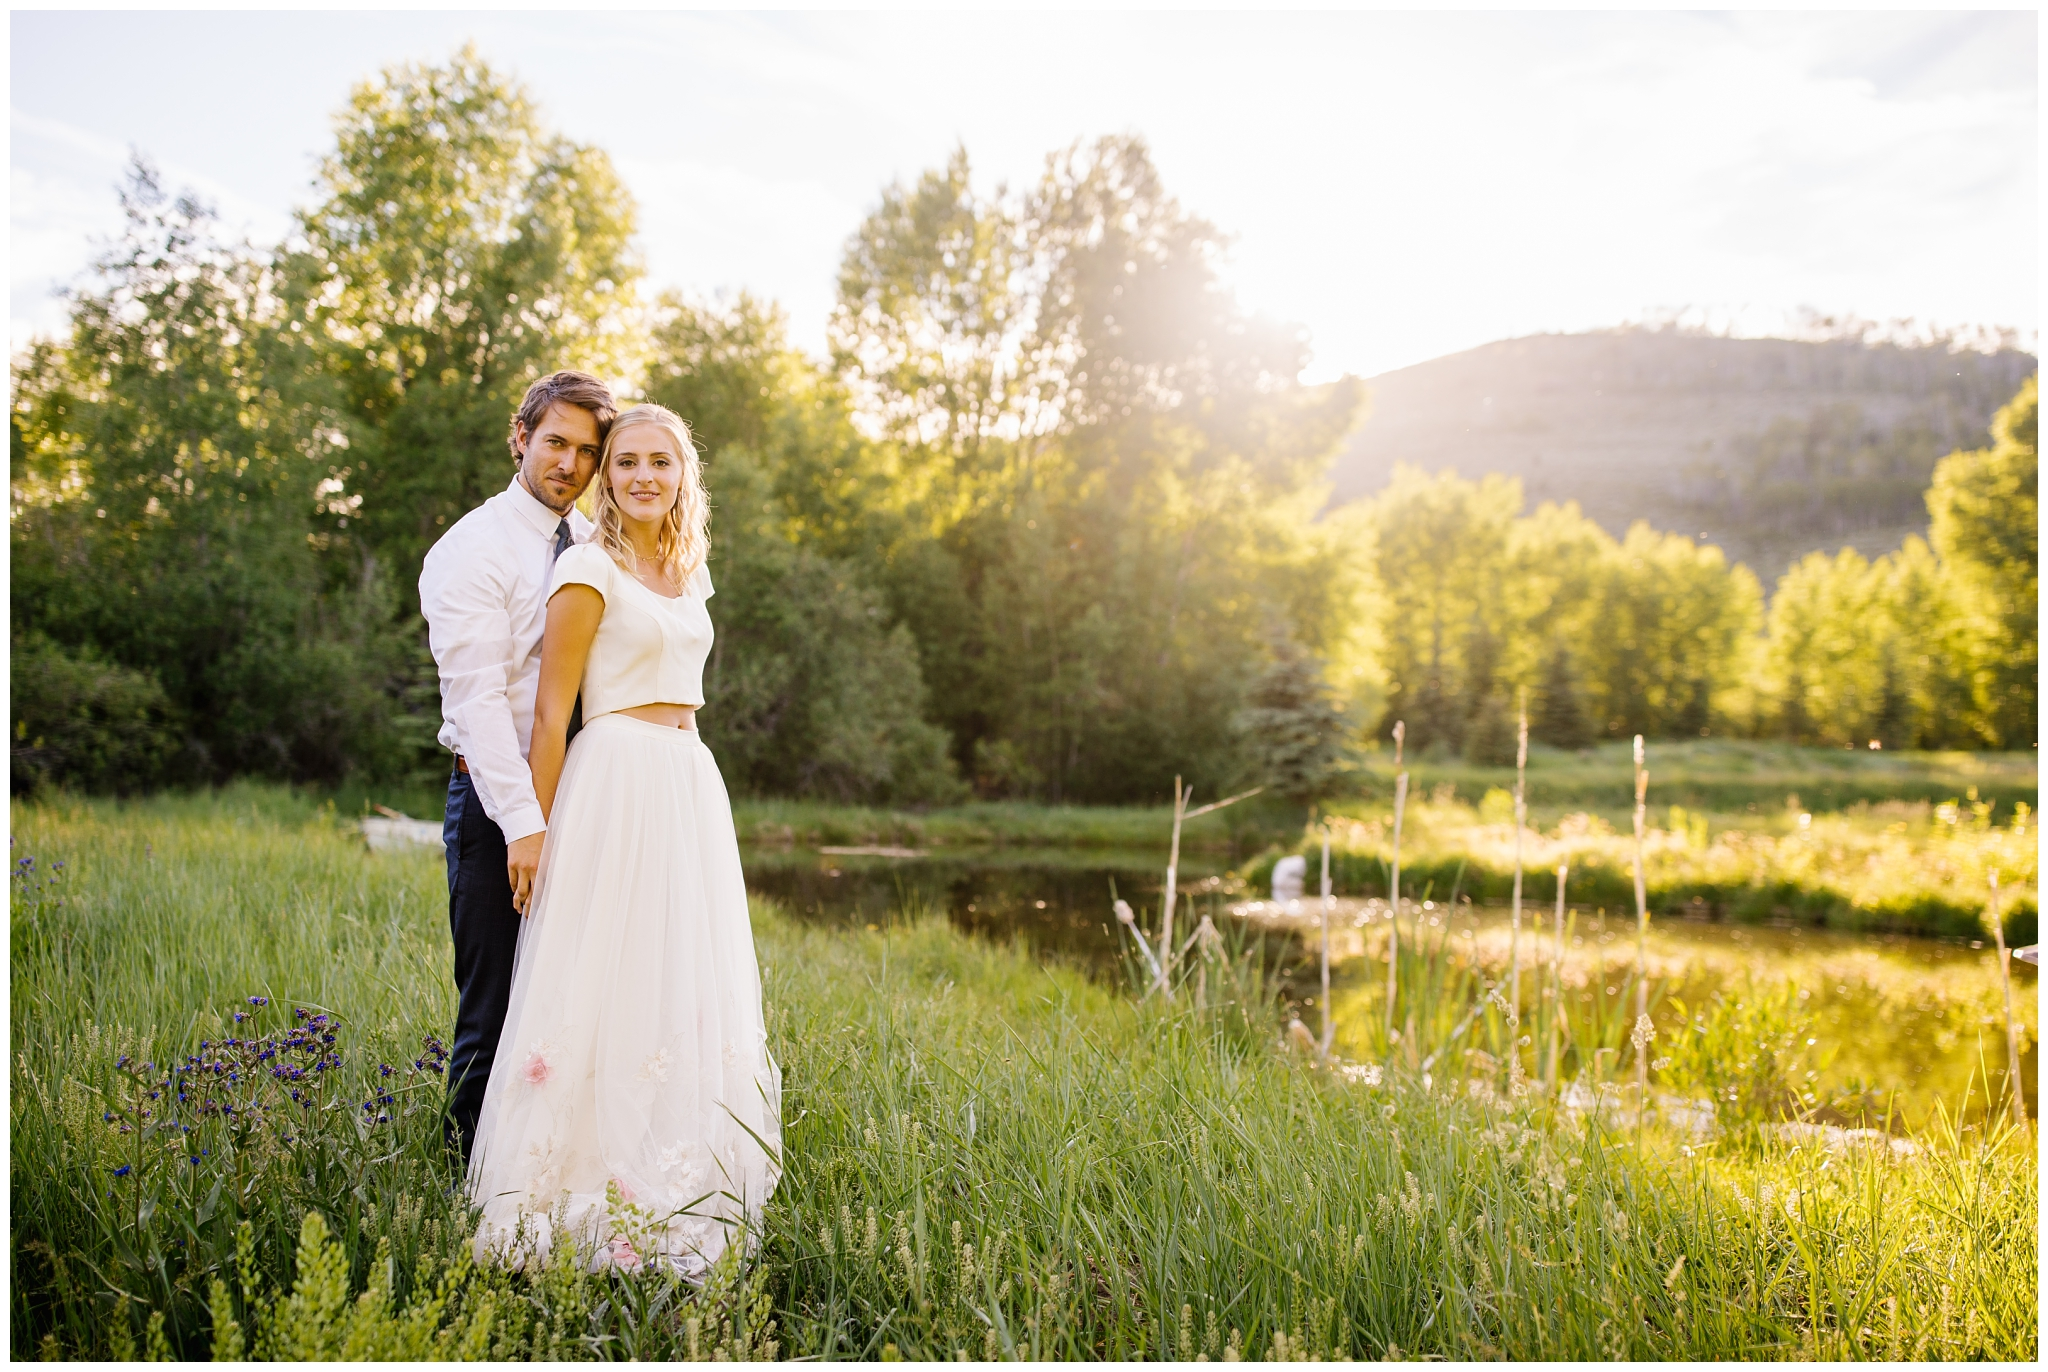 Lizzie-B-Imagery-Utah-Wedding-Photographer-Park-City-Photographer_0038.jpg